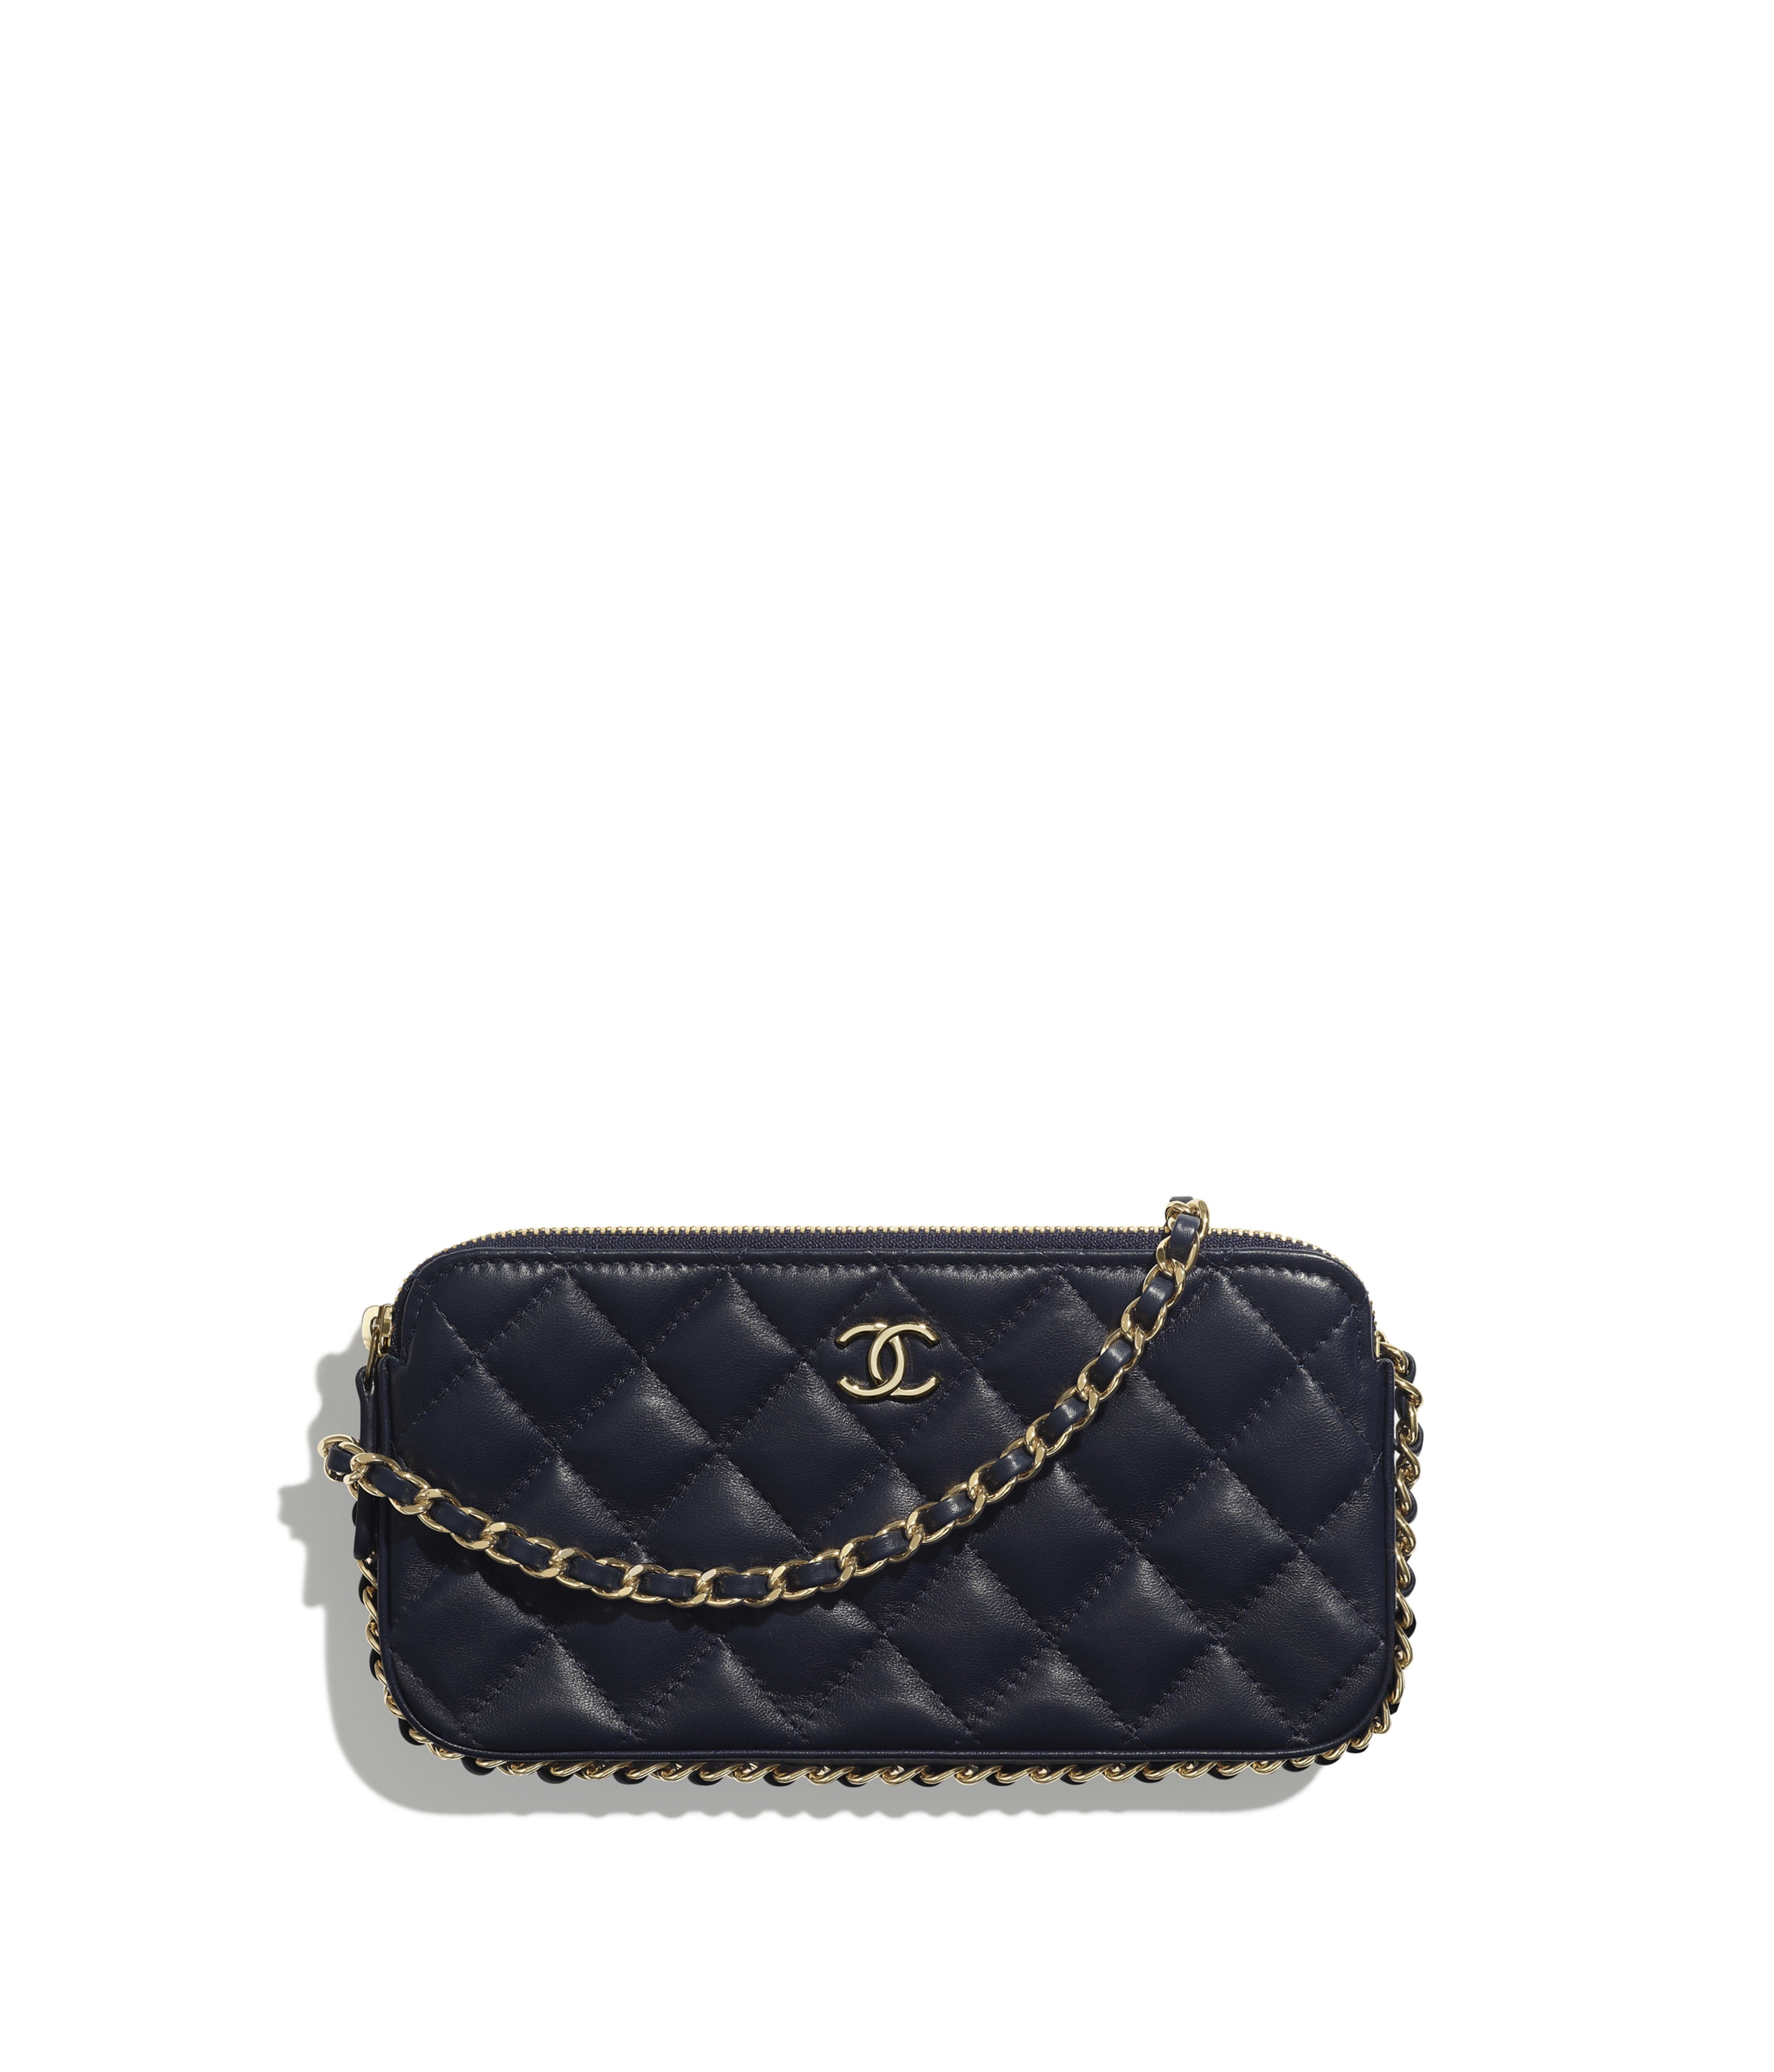 67efd052 Clutch with Chain Lambskin, Chains & Gold-Tone Metal, Navy Blue Ref.  AP0738B01129N4858